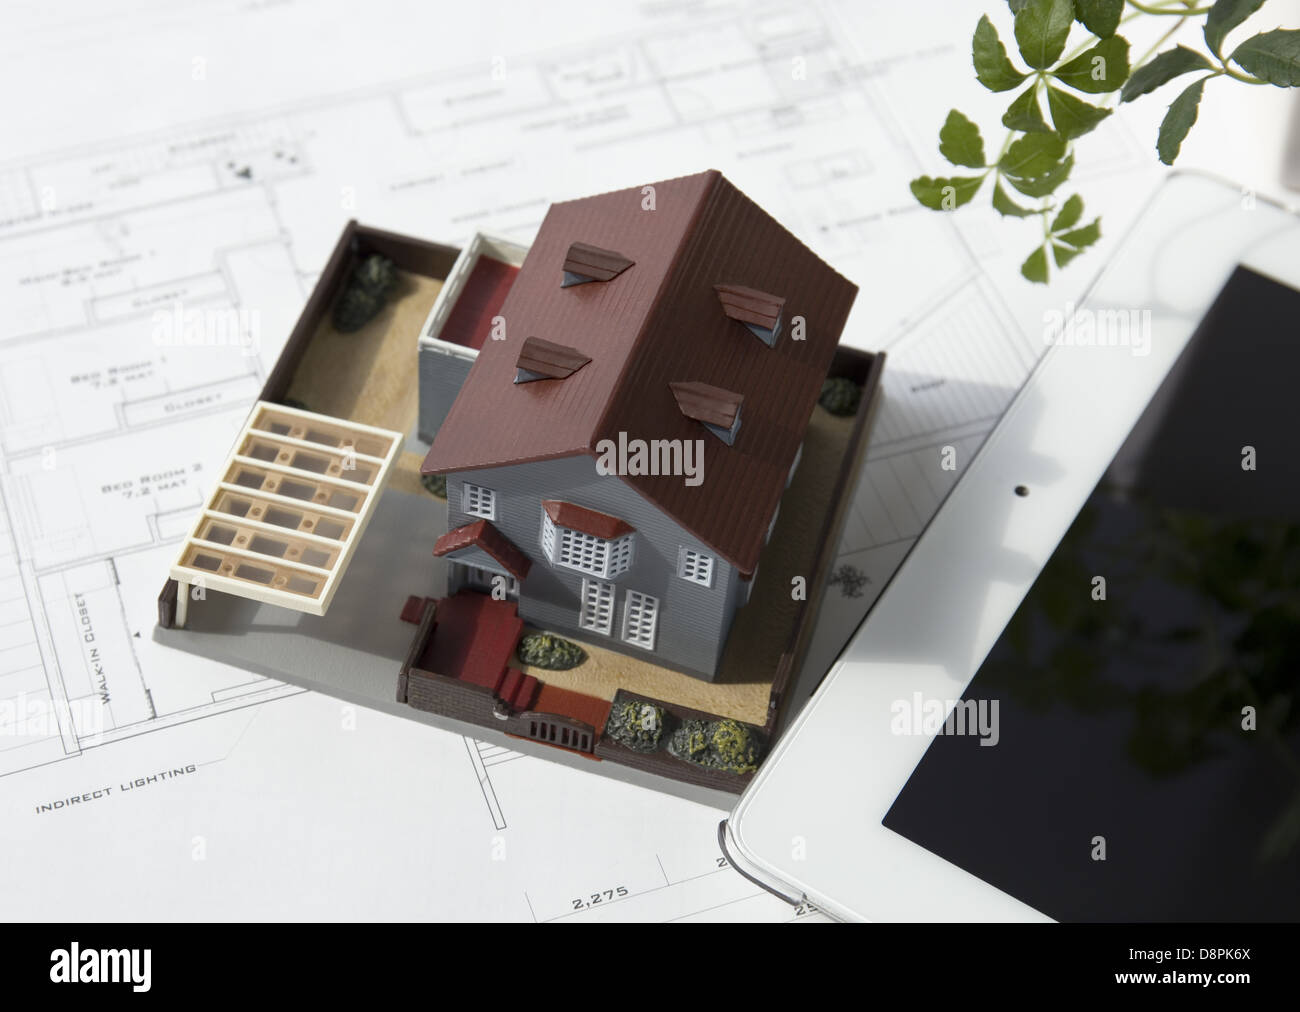 Architectural drawing, an architectural model and a tablet PC - Stock Image